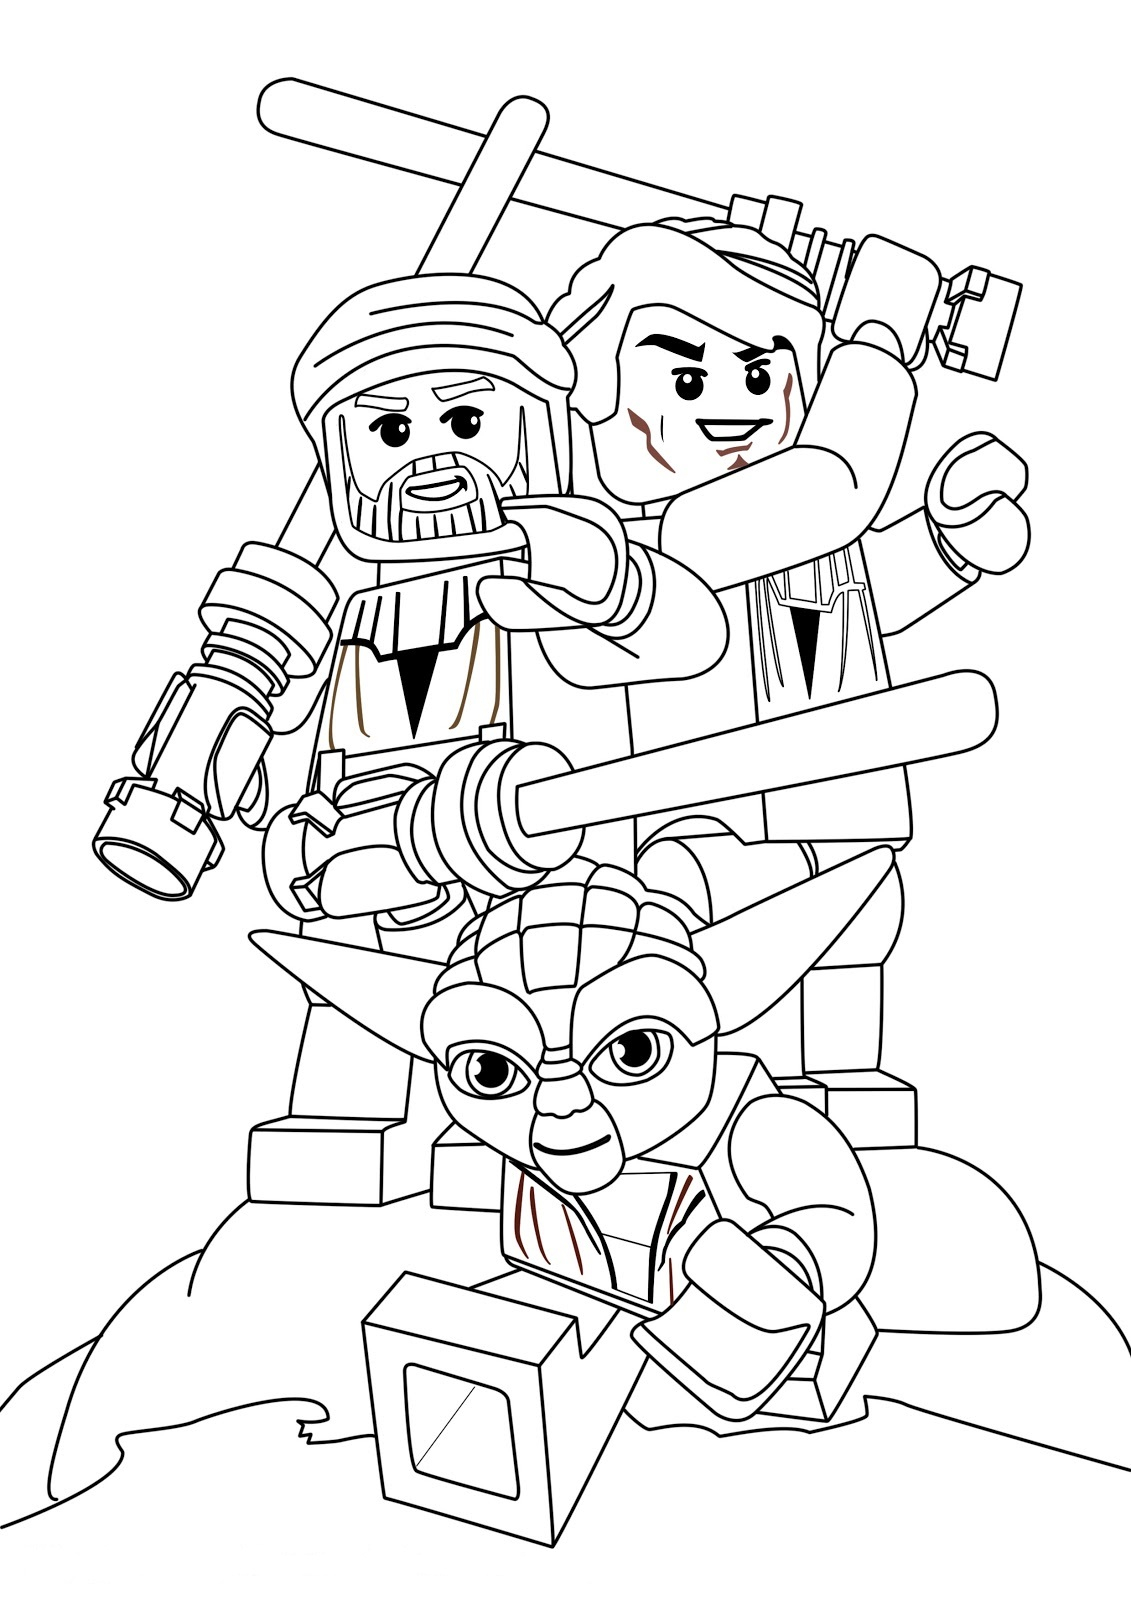 Lego Coloring Pages Star Wars Star Wars Coloring Pages Free Printable Star Wars Coloring Pages